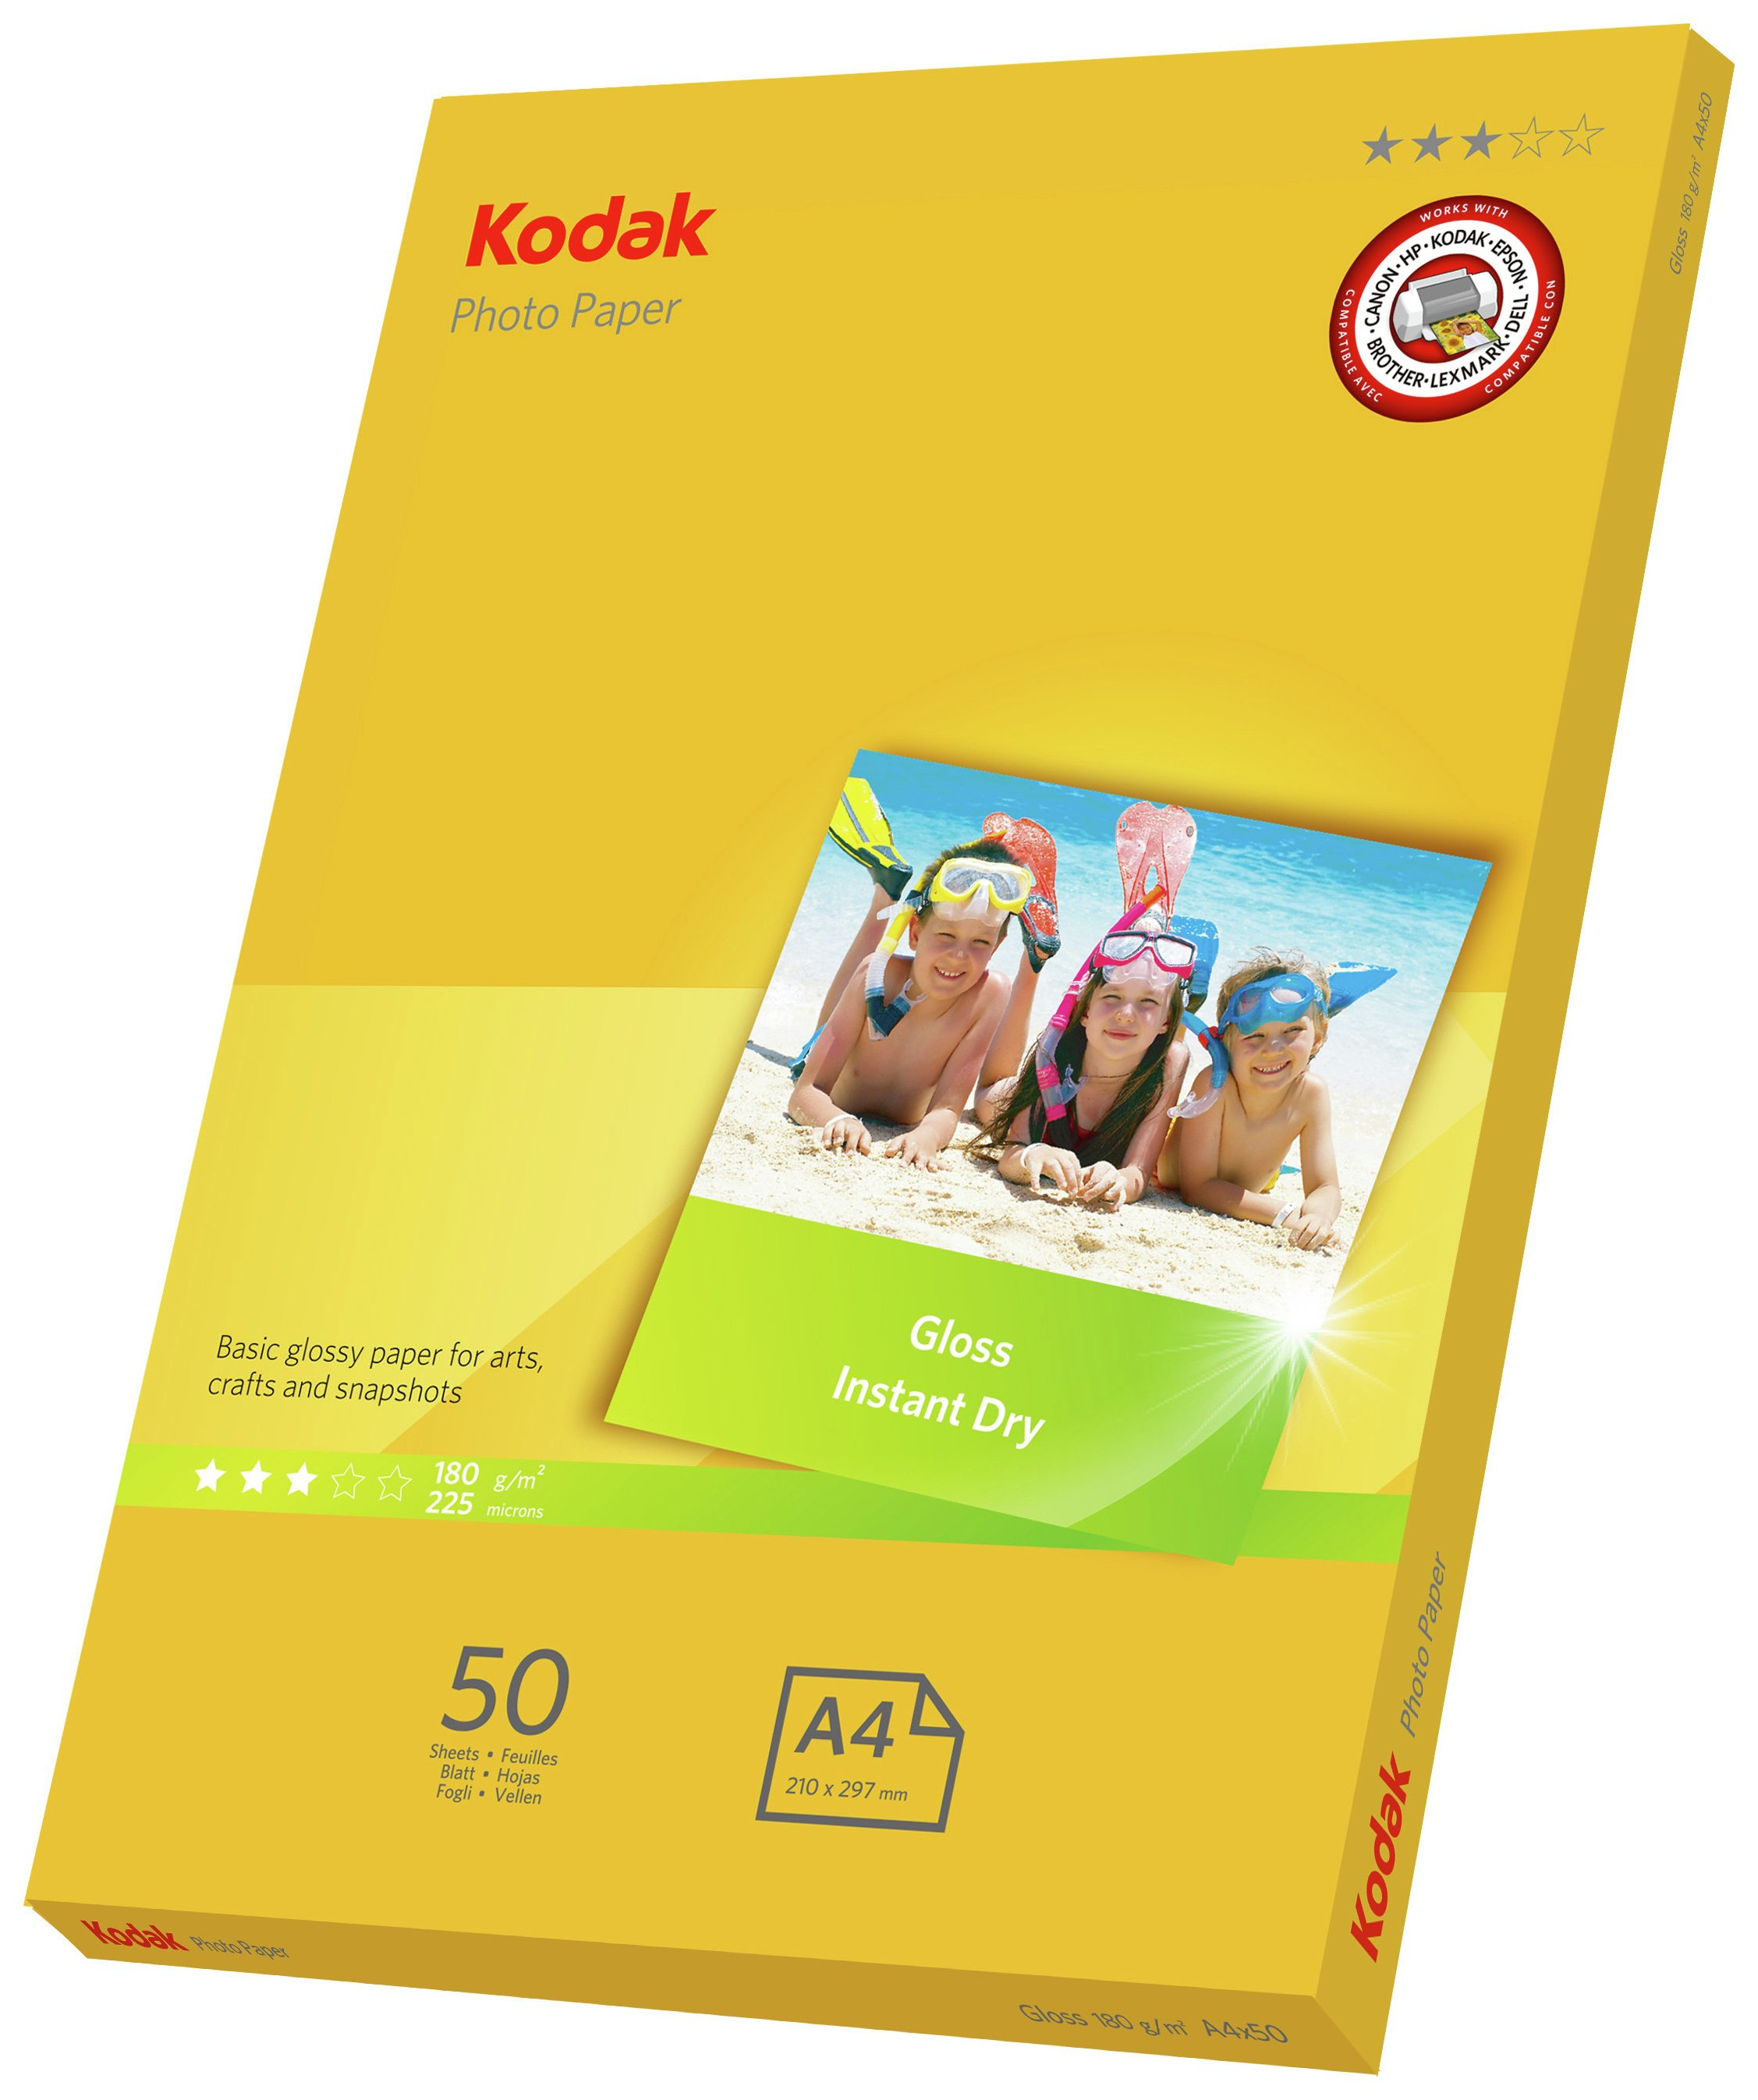 kodak-photo-glossy-a4-180-gsm-paper-50-pack